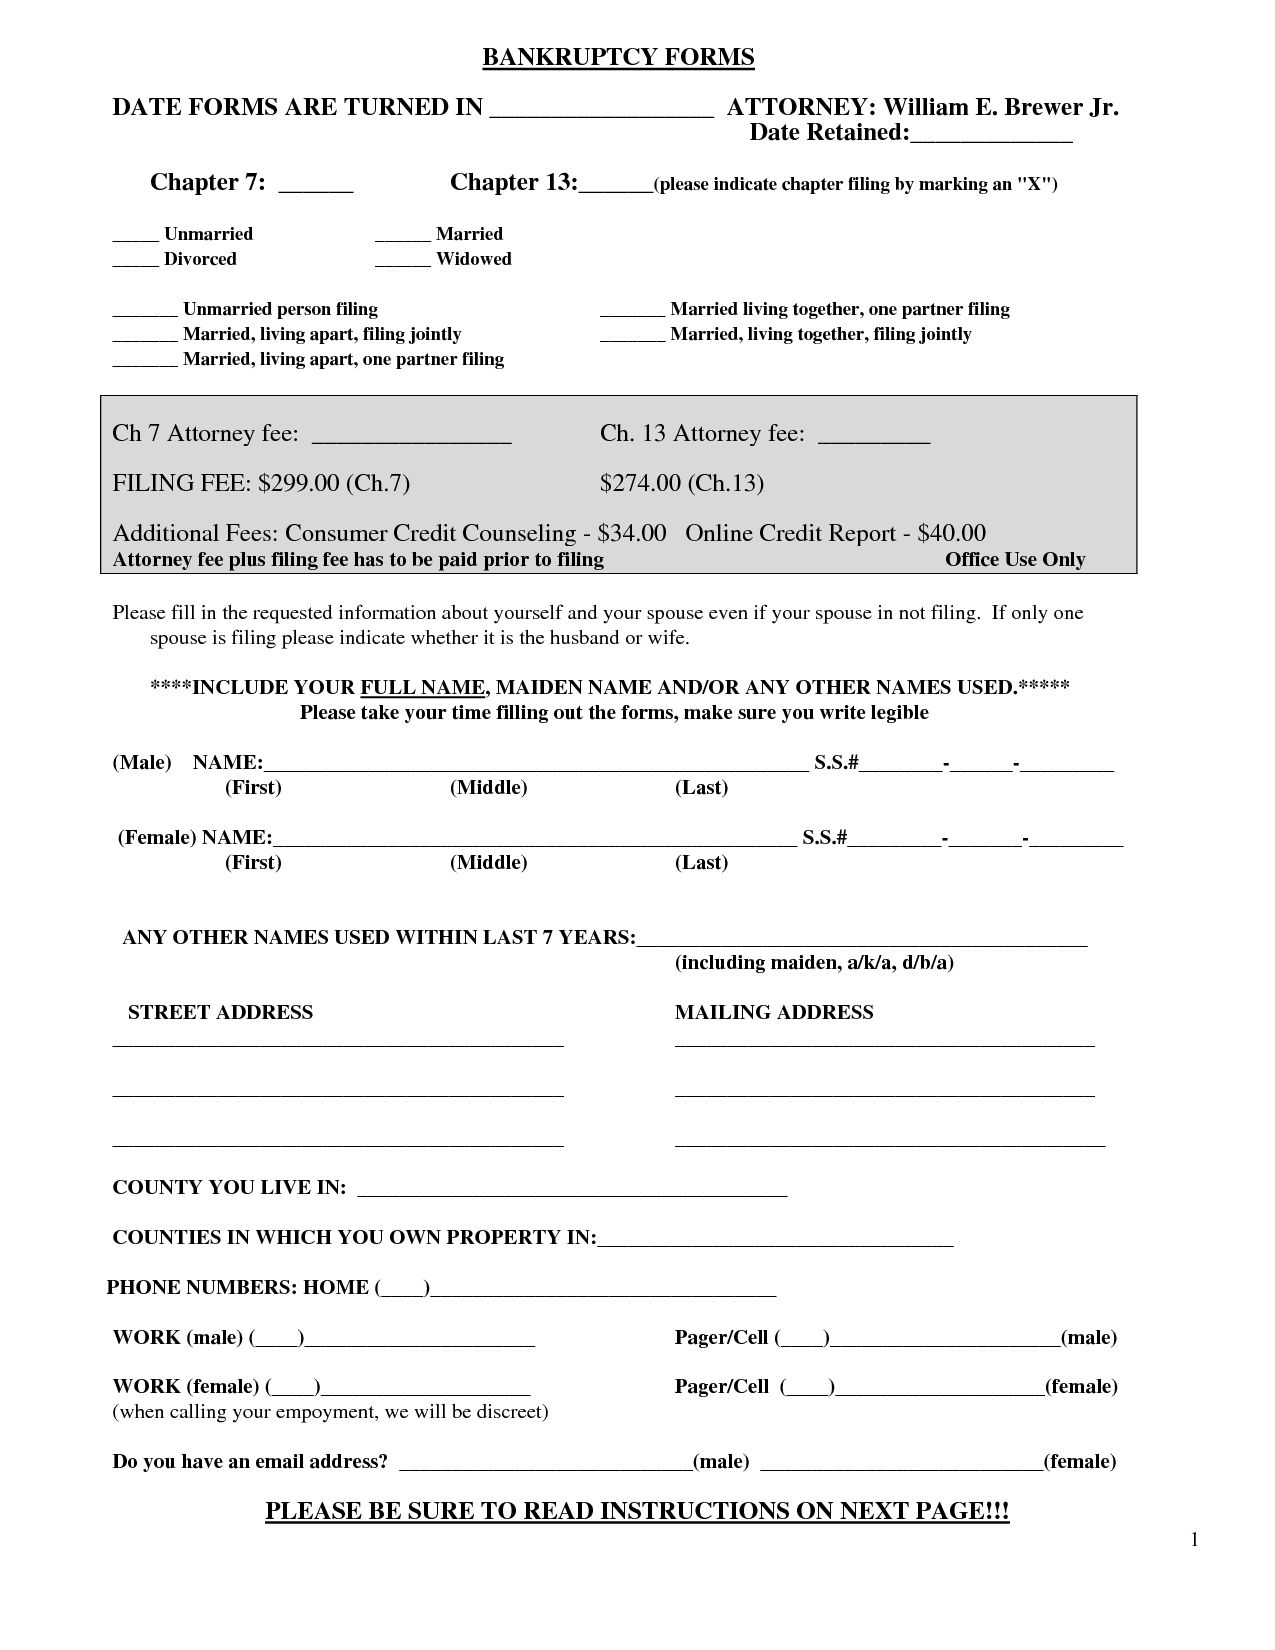 bankruptcy letter of explanation template - bankruptcy sample form bankruptcy sample form sample